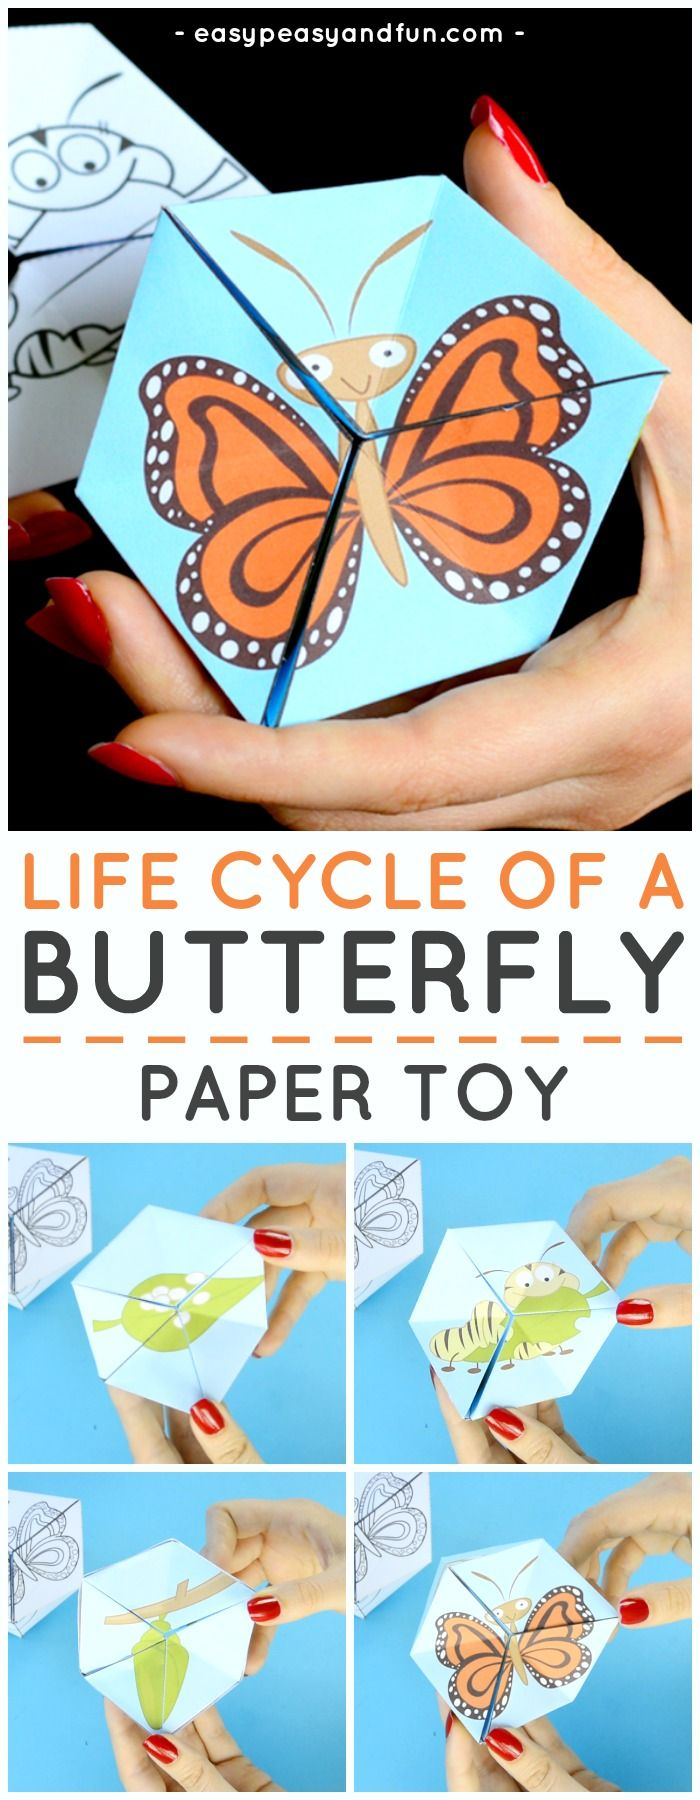 Butterfly Life Cycle Paper Toy Craft – Flextangle Template